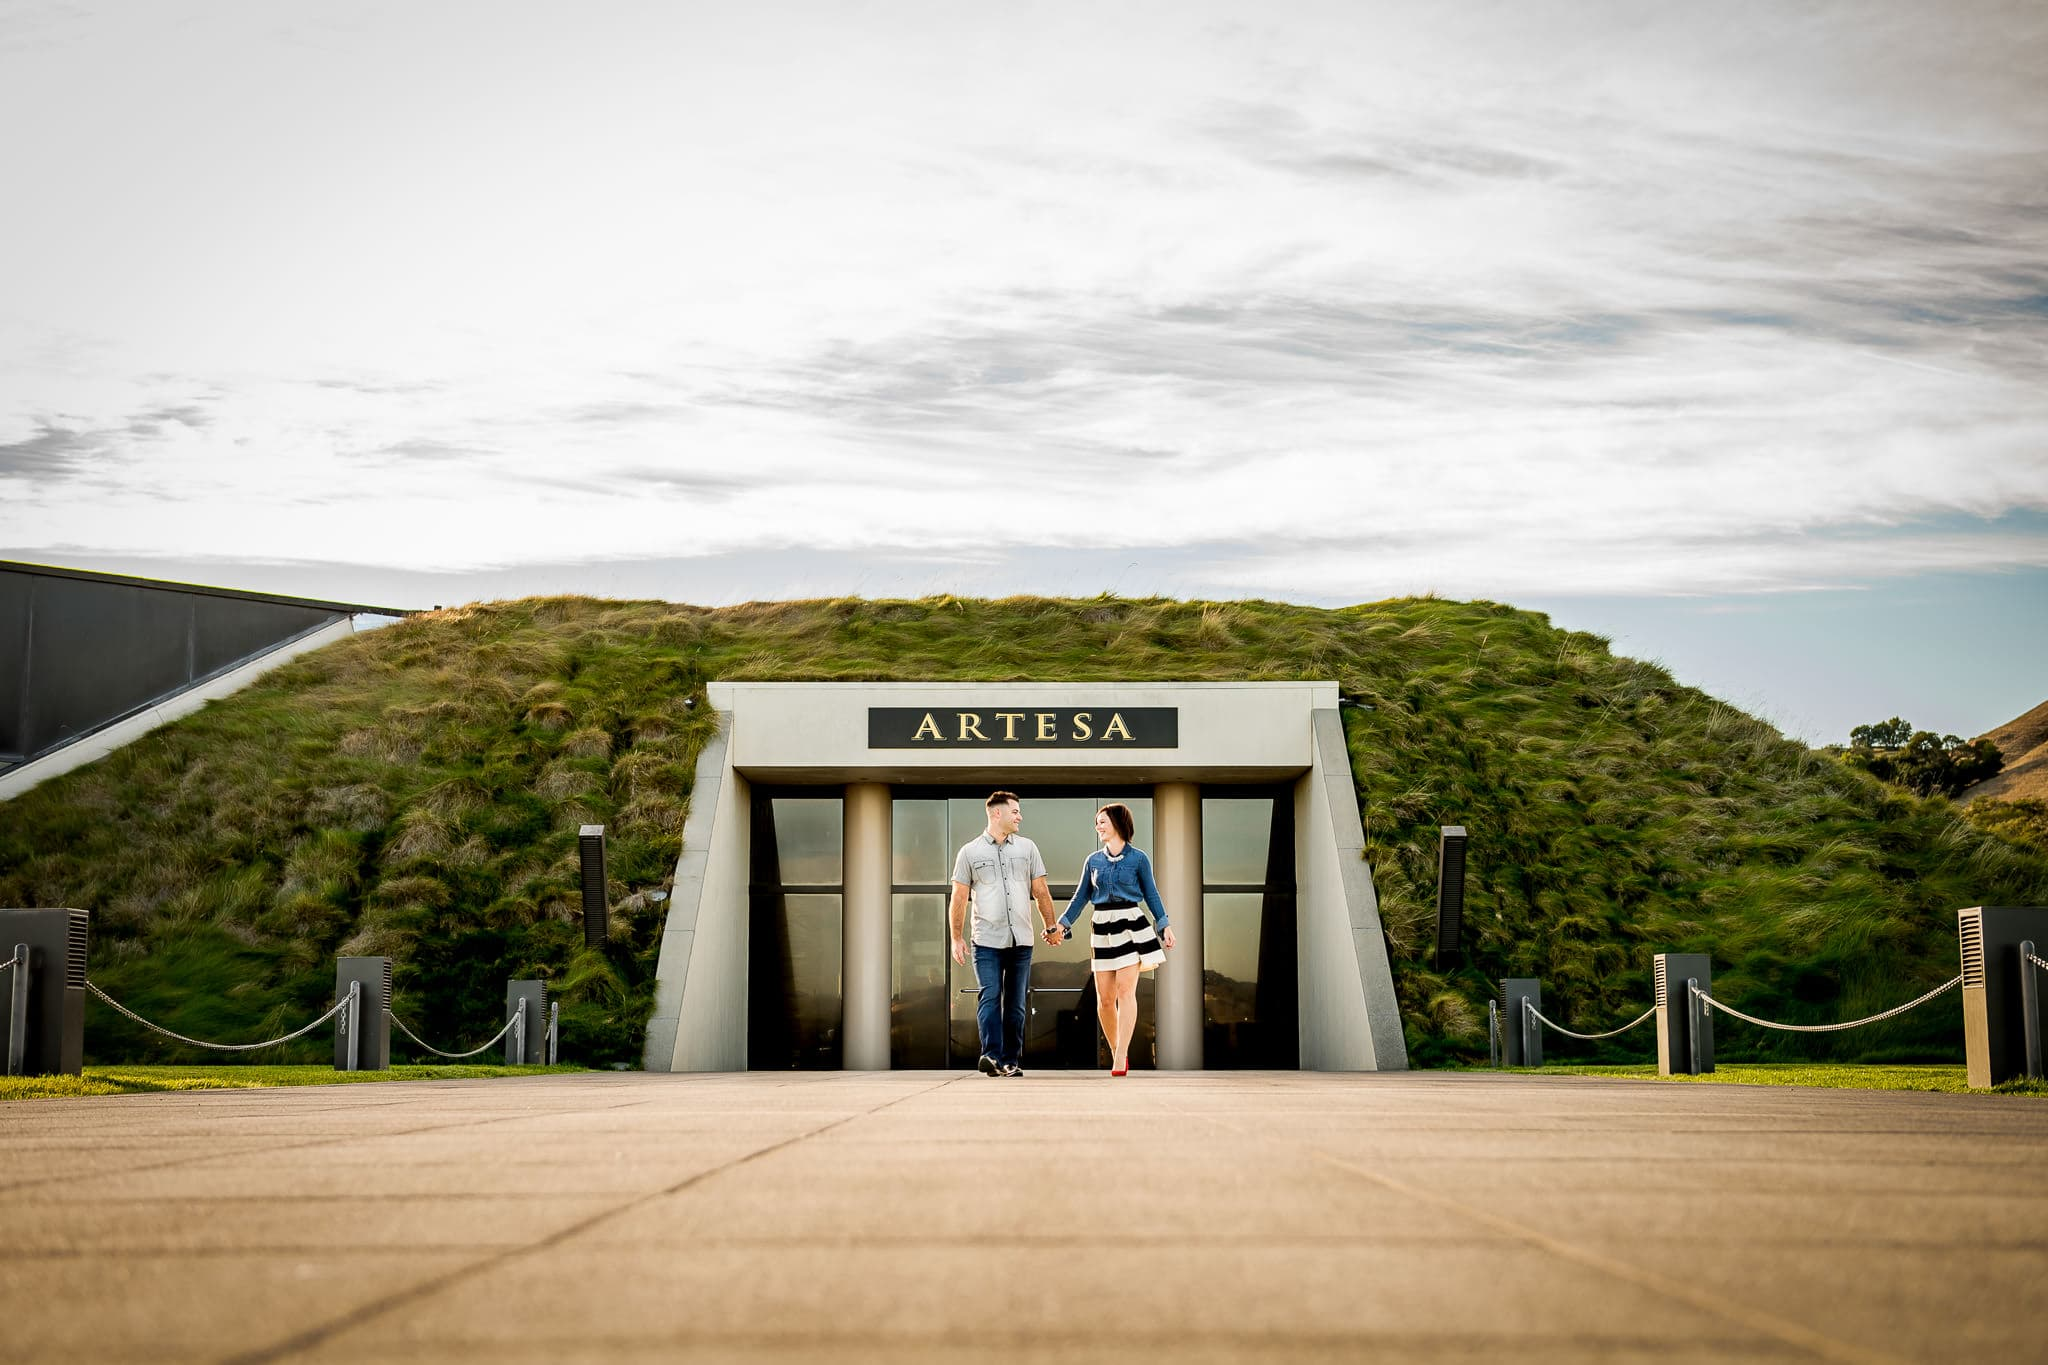 An engaged couple walking together near the entrance of the bunker-like building at Artesa Winery in Napa Valley